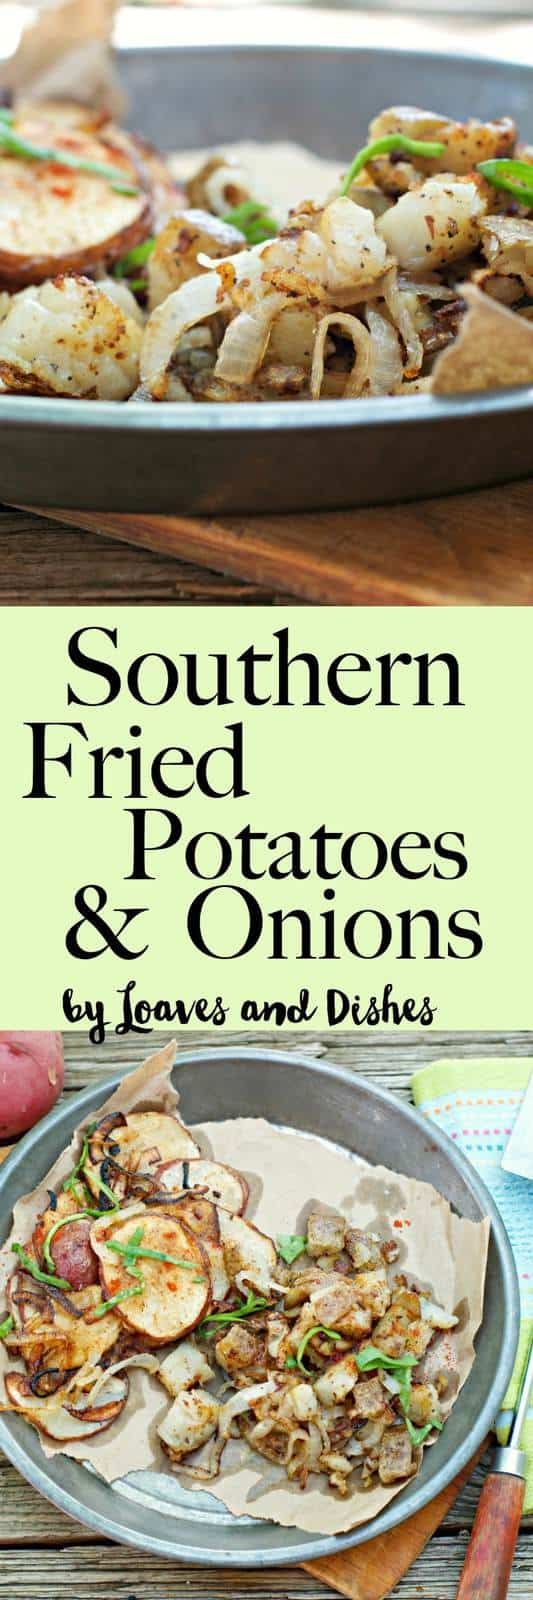 This Recipe Is For Fried Potatoes And Onions In The Old Southern Way Made In A